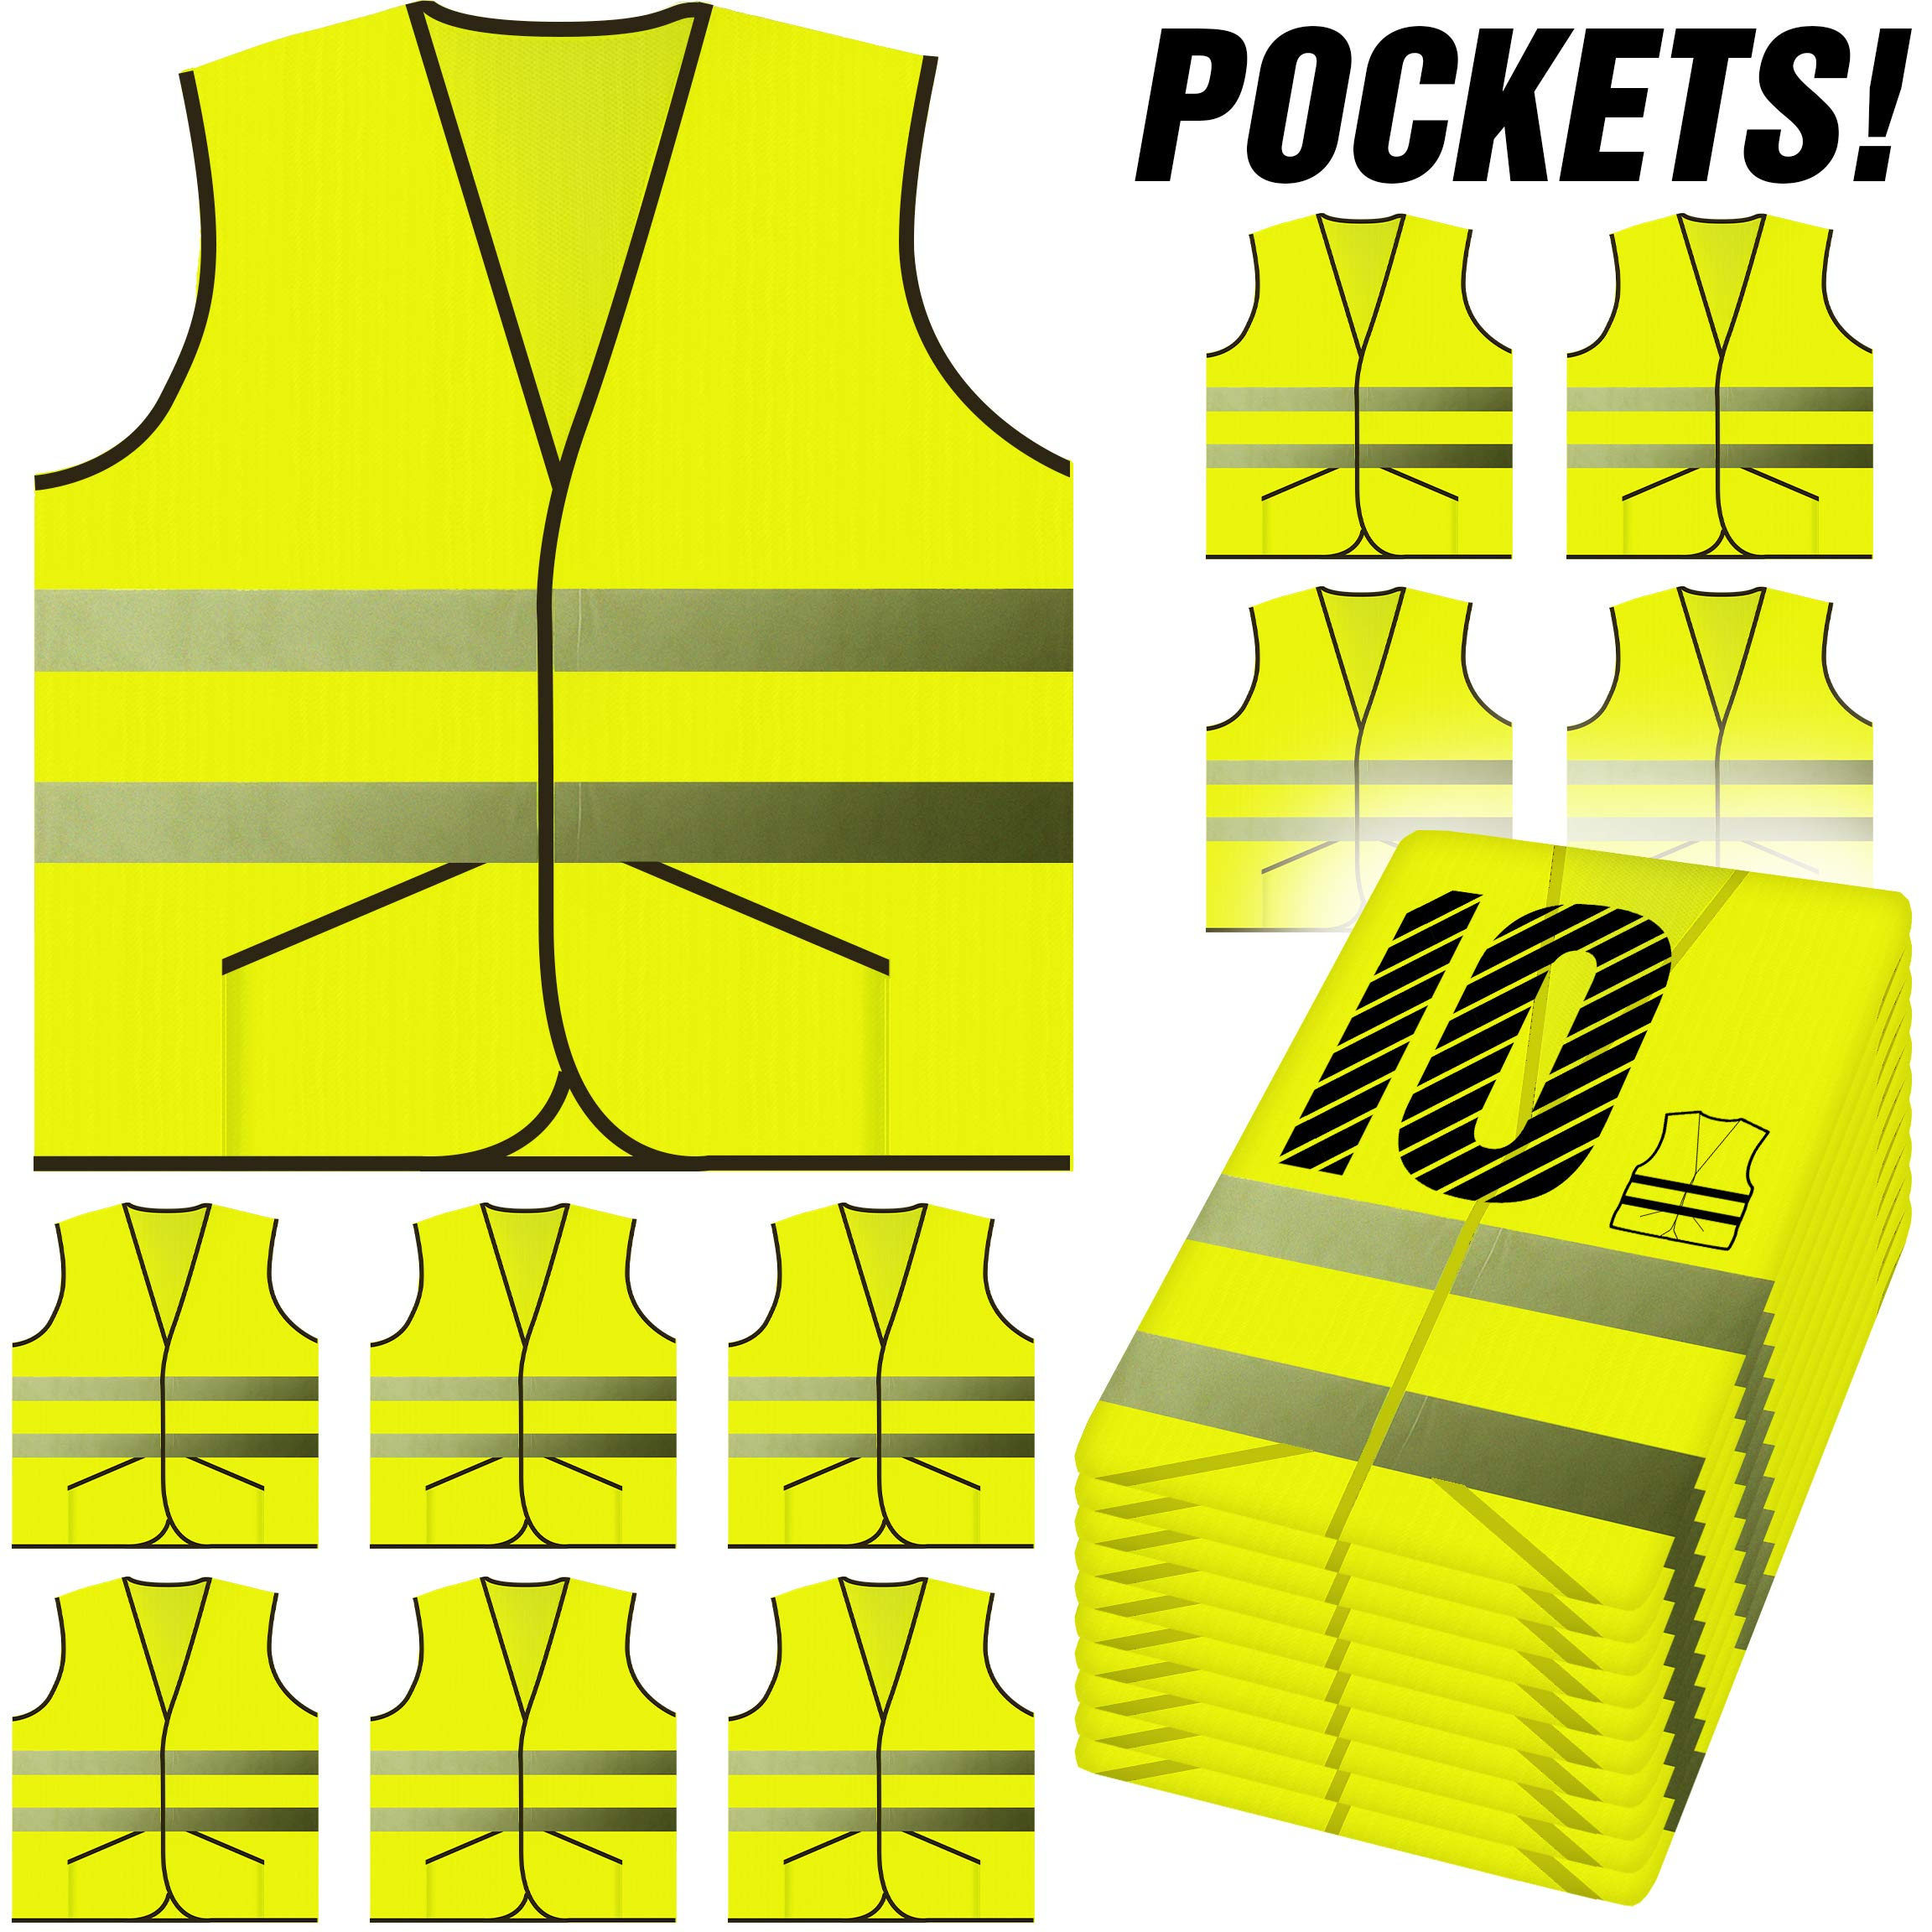 PeerBasics, Pocket Safety Vest 10 Pack, Yellow Reflective High Visibility, Hi Vis Silver Strip, Men & Women, Work, Cycling, Runner, Surveyor, Volunteer, Guard, Road, Construction (10, Neon Yellow) by PeerBasics